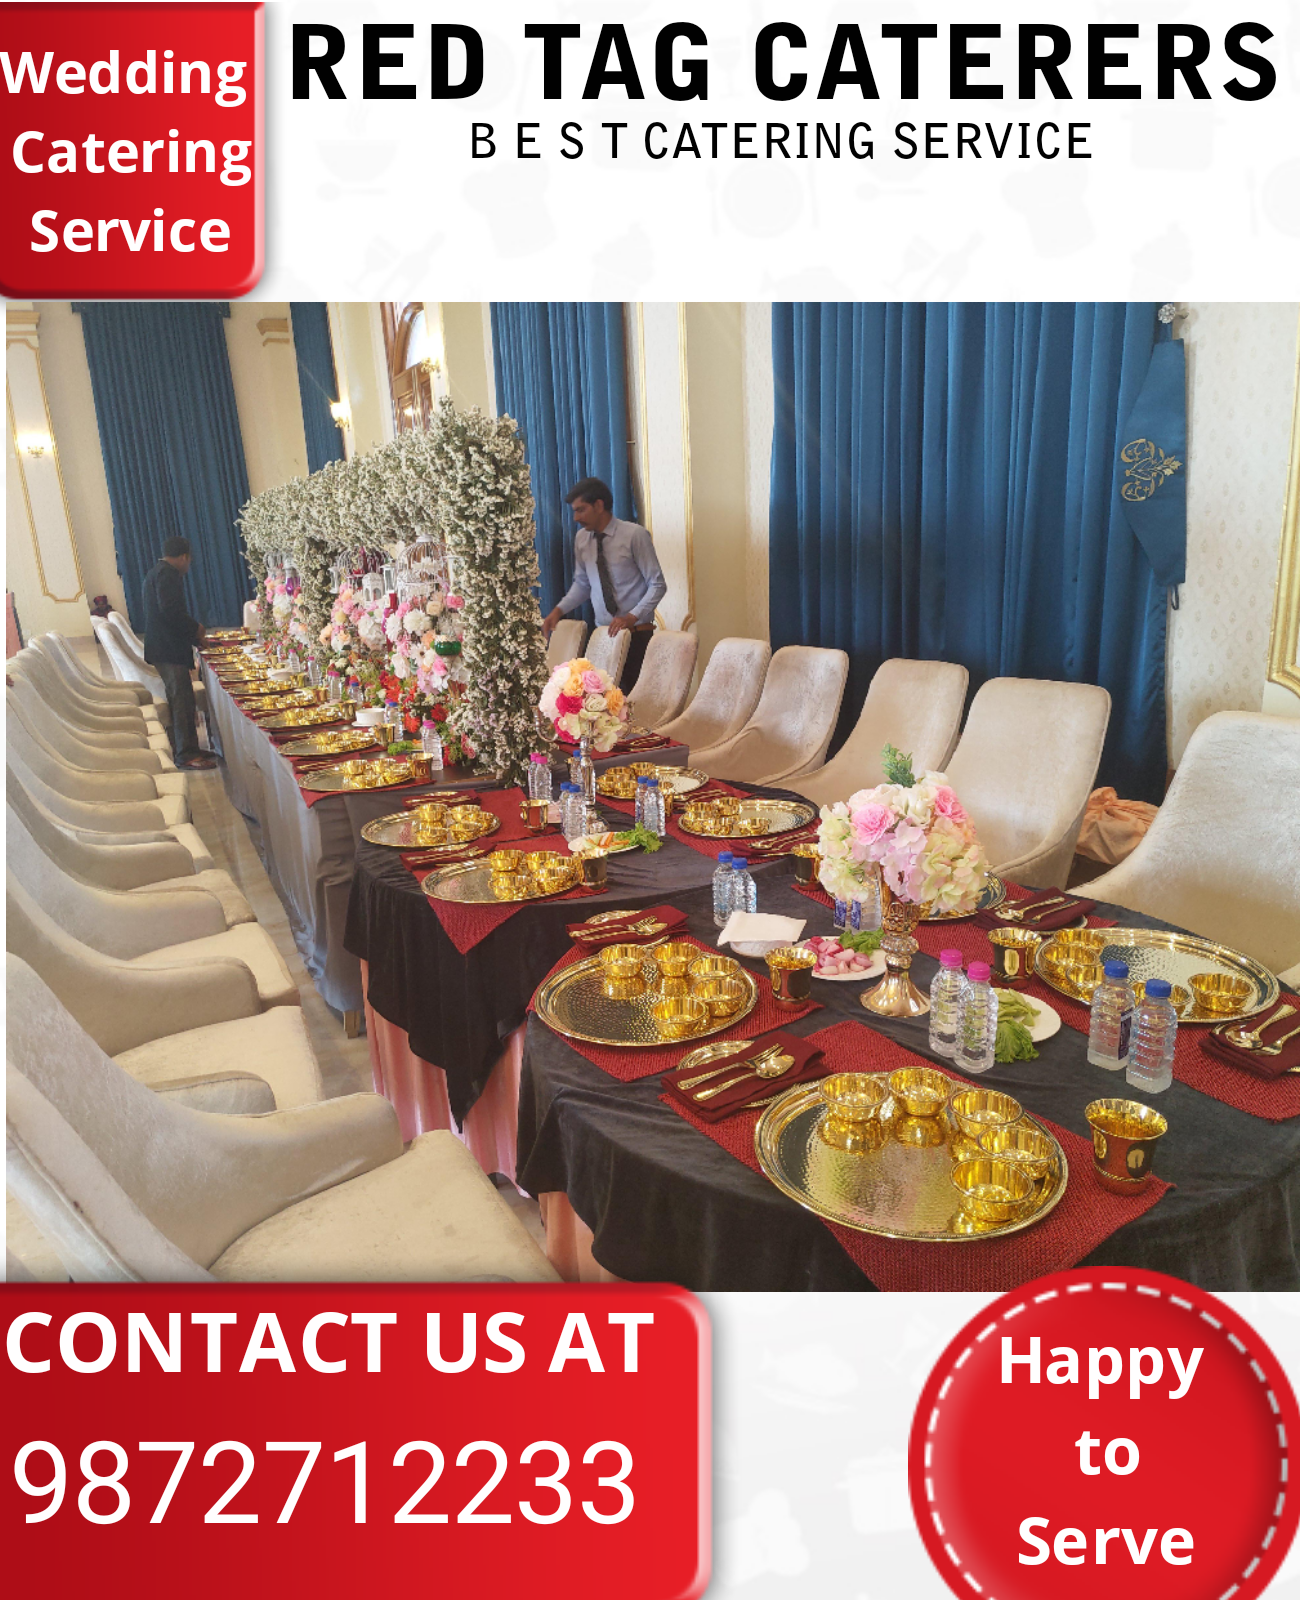 Extraordinary Caterers in Mohali Punjab | Red Tag Caterers | Best Caterers. In mohali, - GL75082